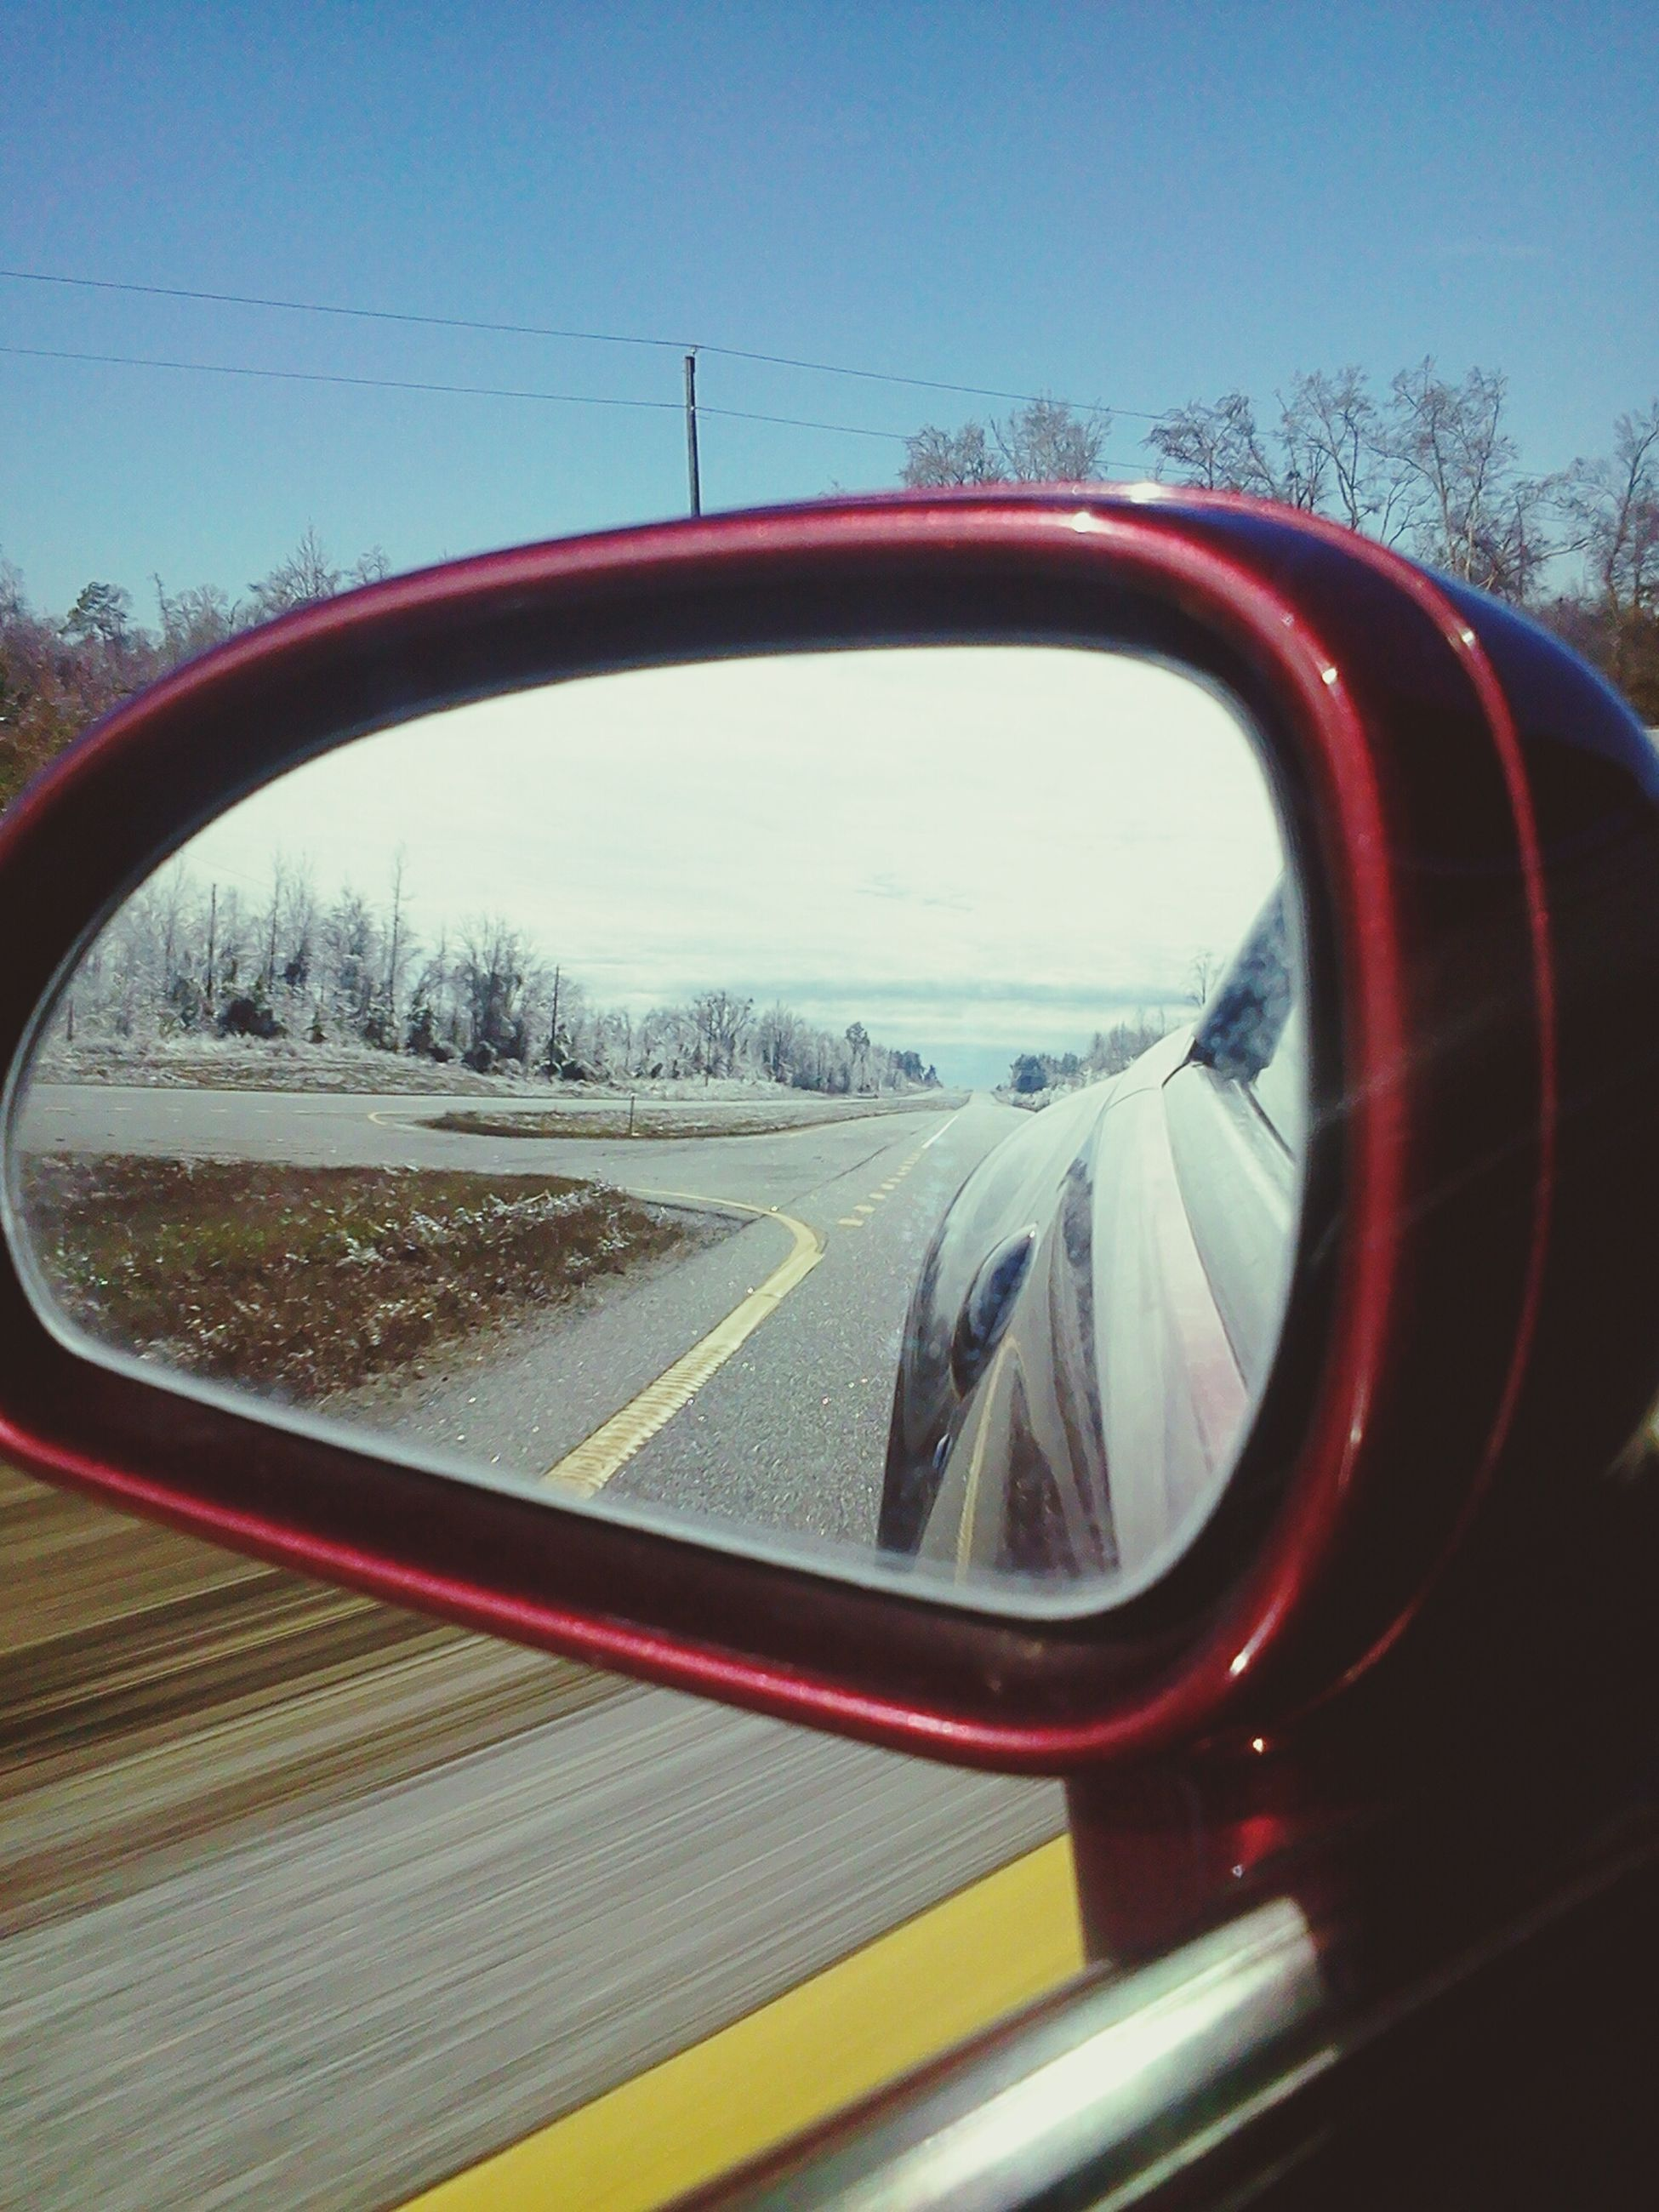 transportation, mode of transport, land vehicle, car, side-view mirror, vehicle interior, transparent, glass - material, car interior, road, reflection, travel, road trip, on the move, windshield, sky, part of, window, tree, rear view mirror